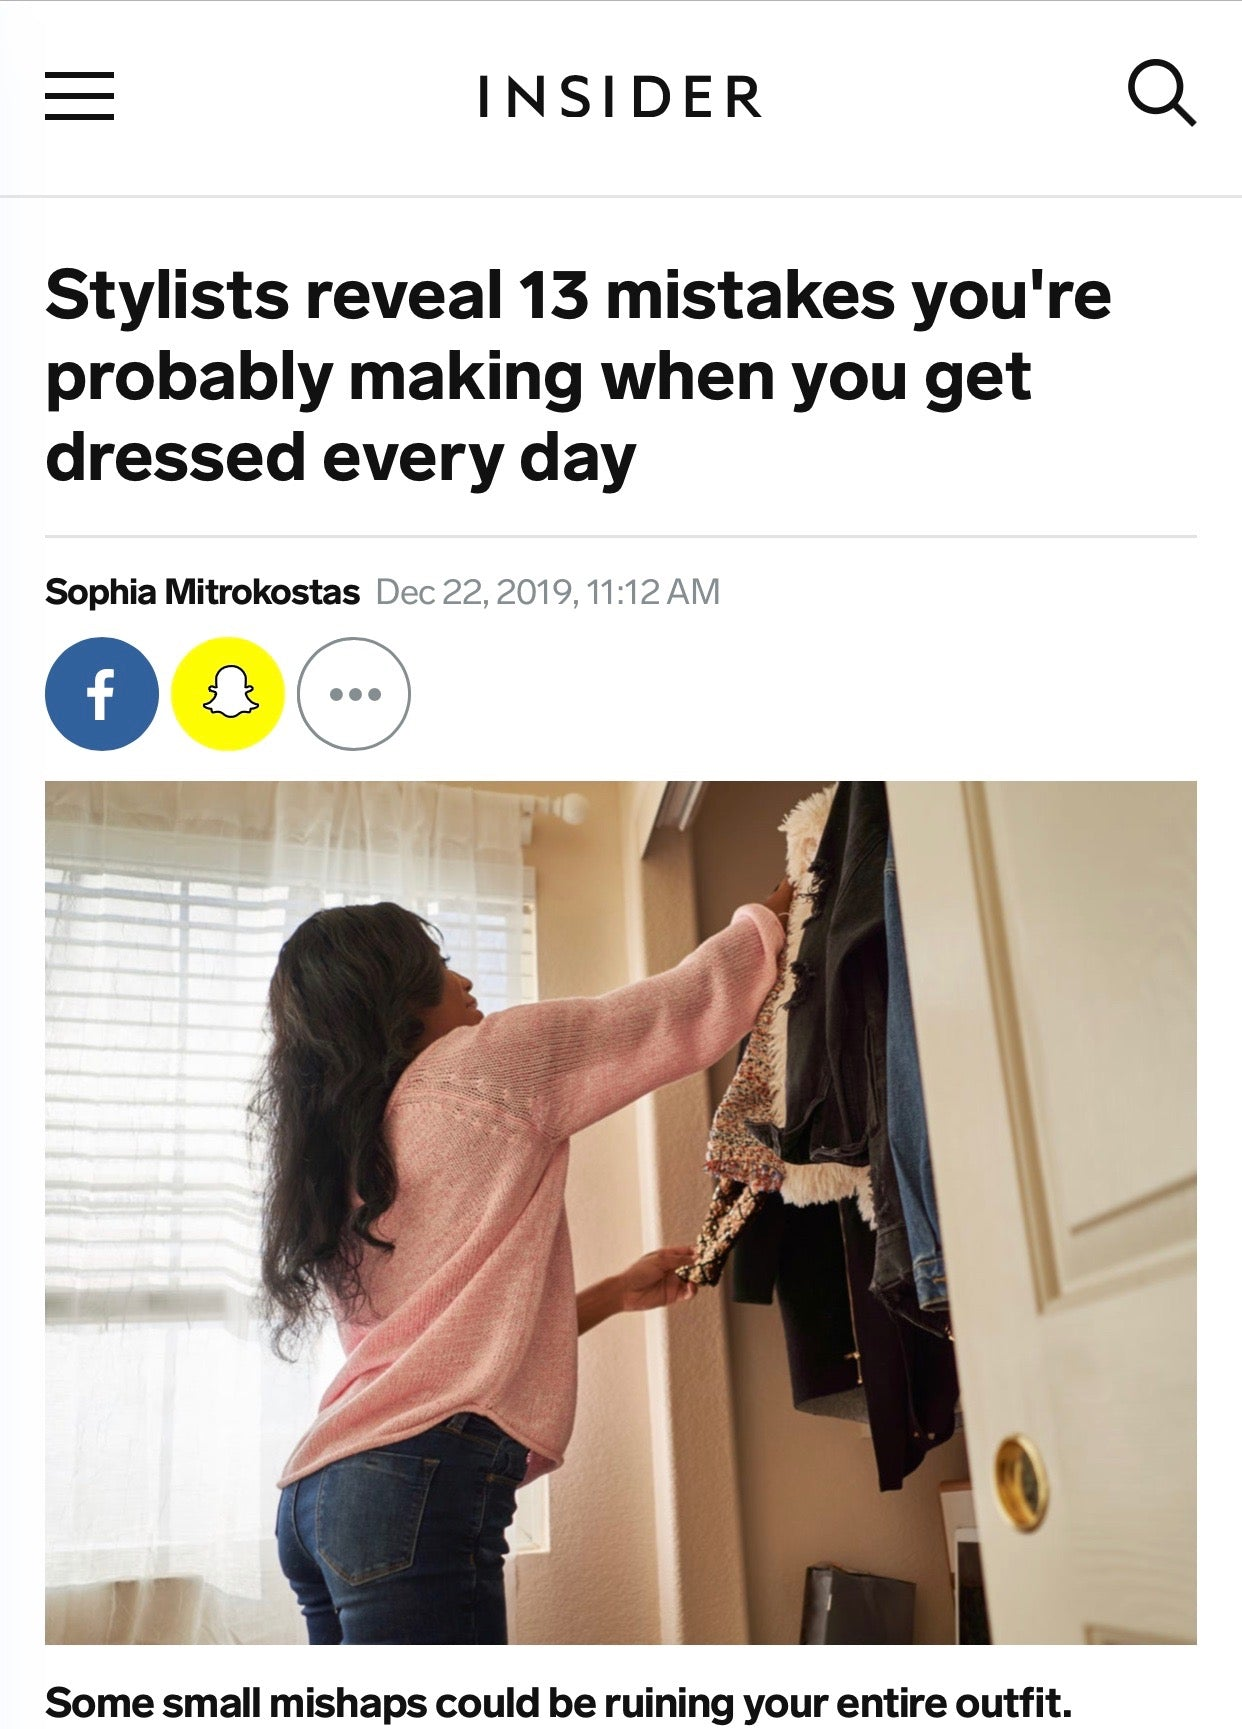 BUSINESS INSIDER: Stylists reveal 13 mistakes you're probably making when you get dressed every day